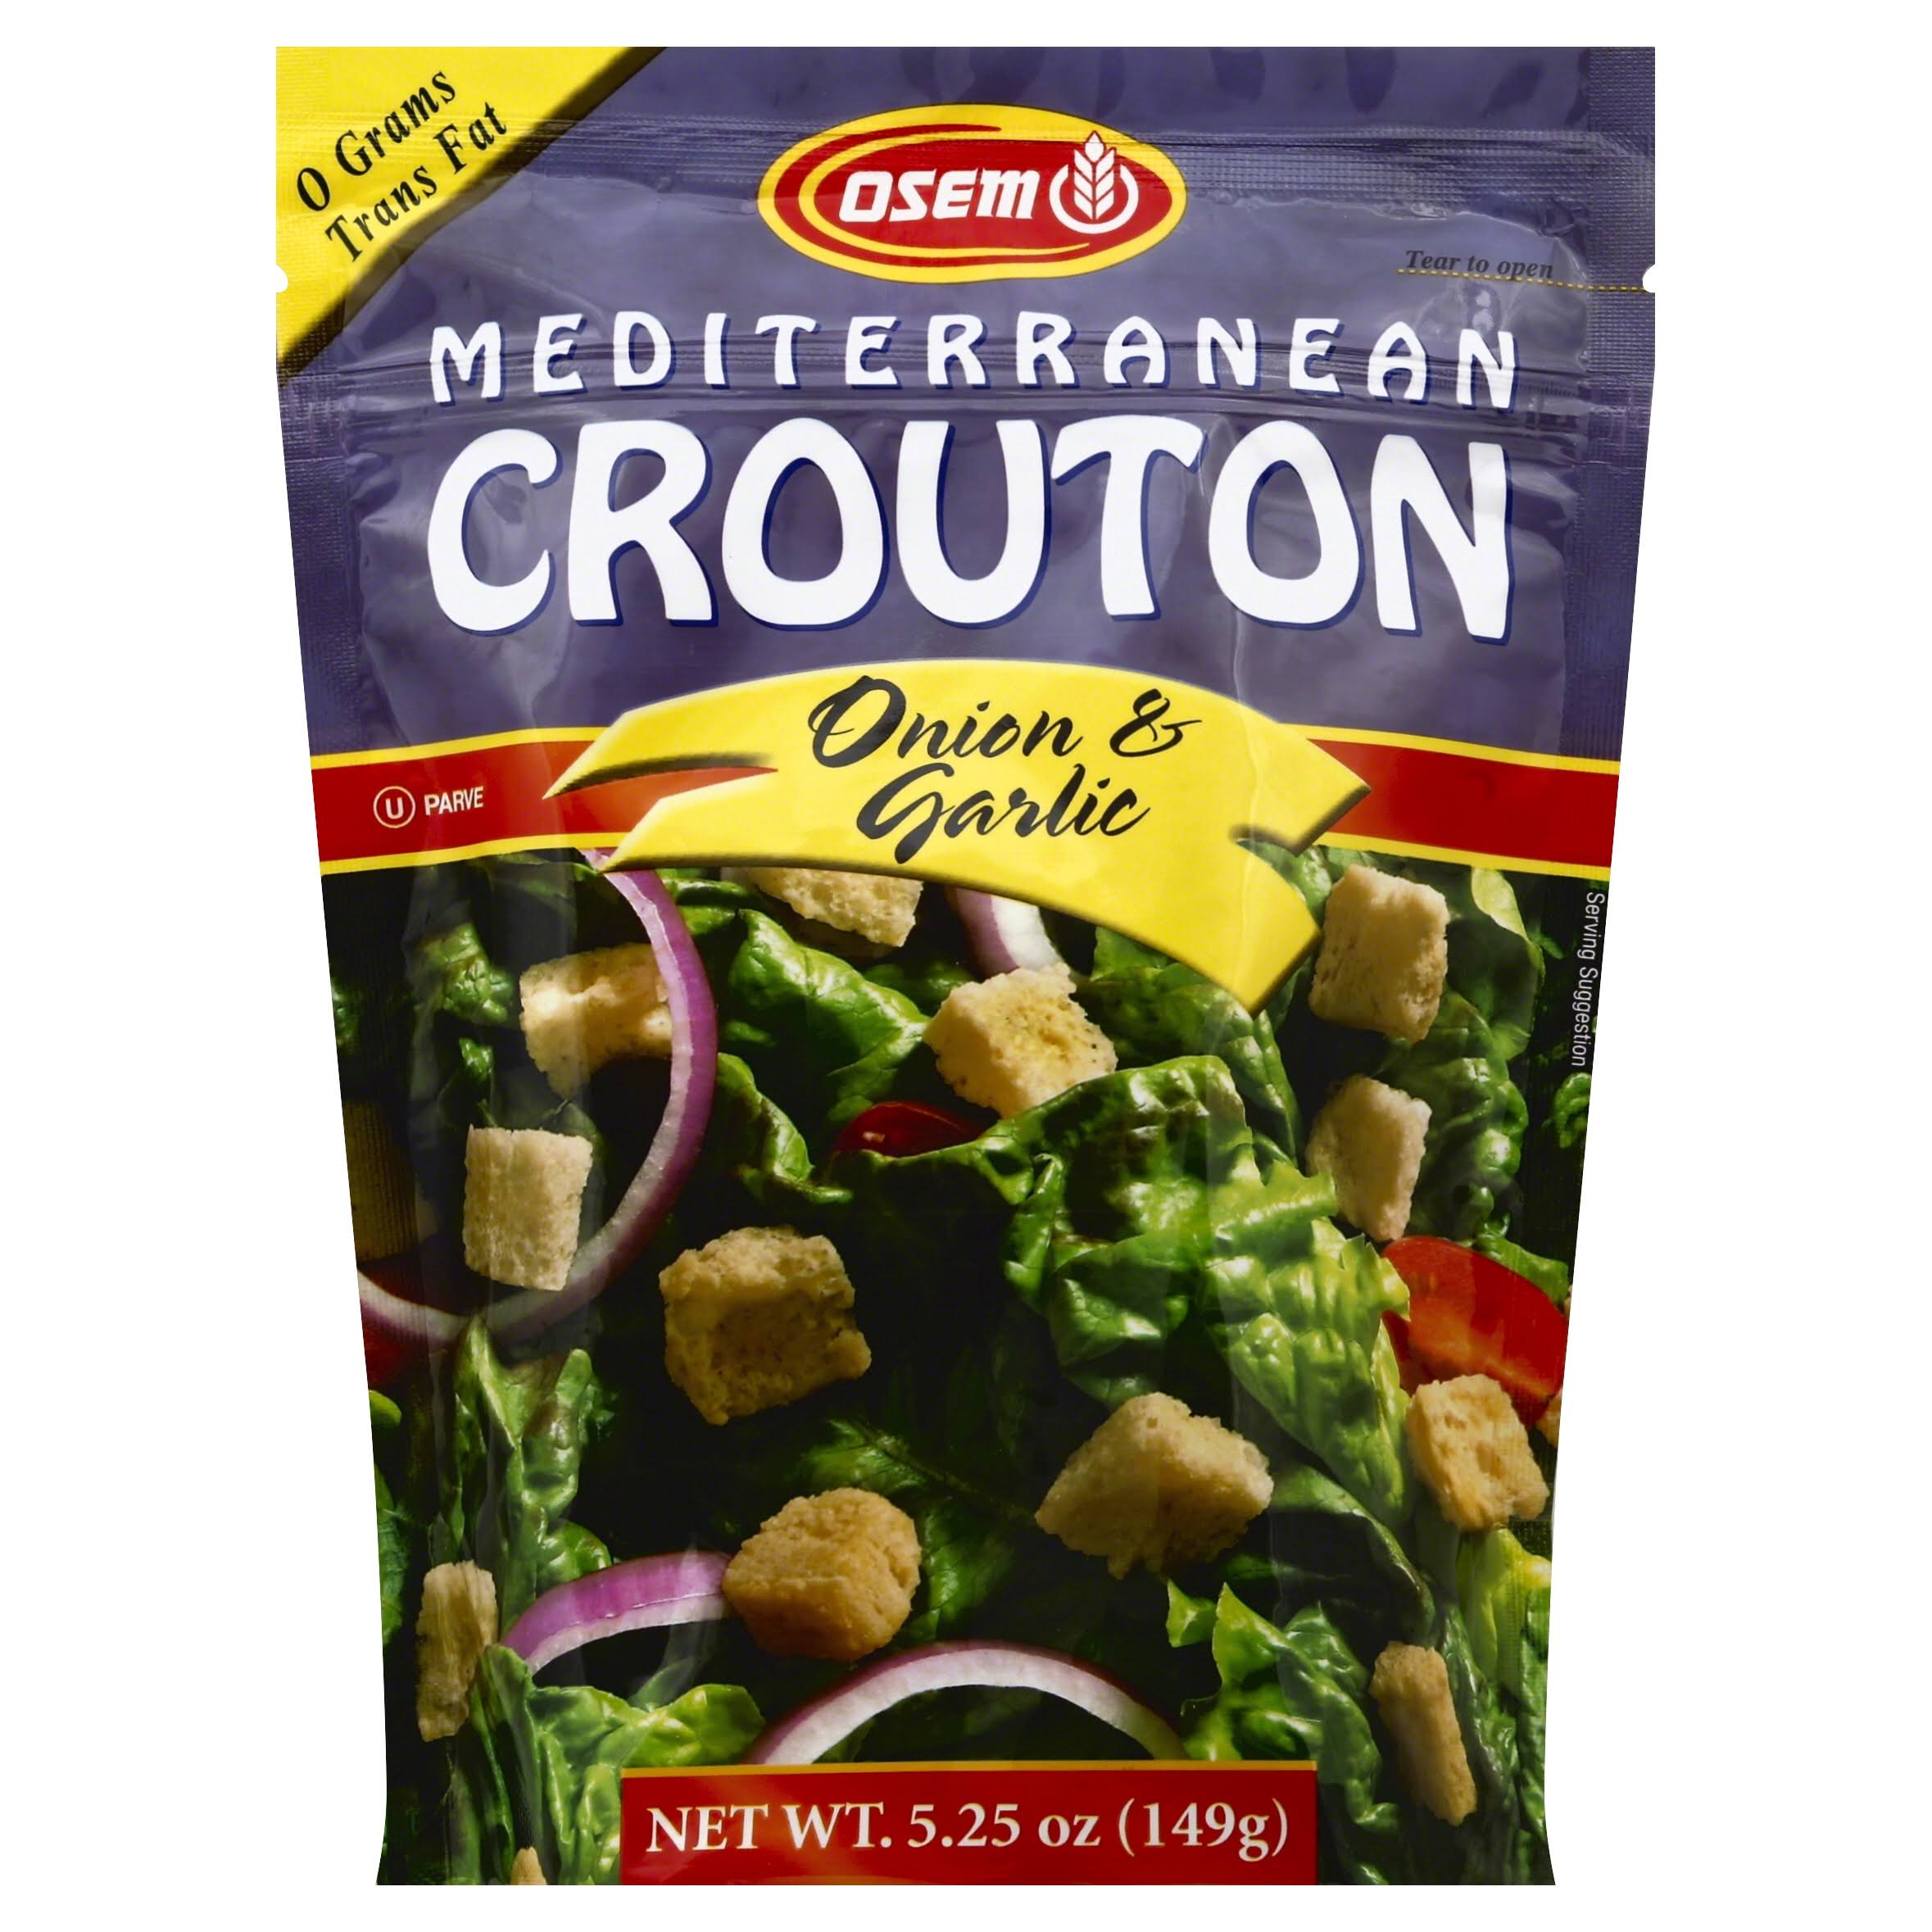 Osem Mediterranean Crouton - Onion and Garlic, 5.25oz